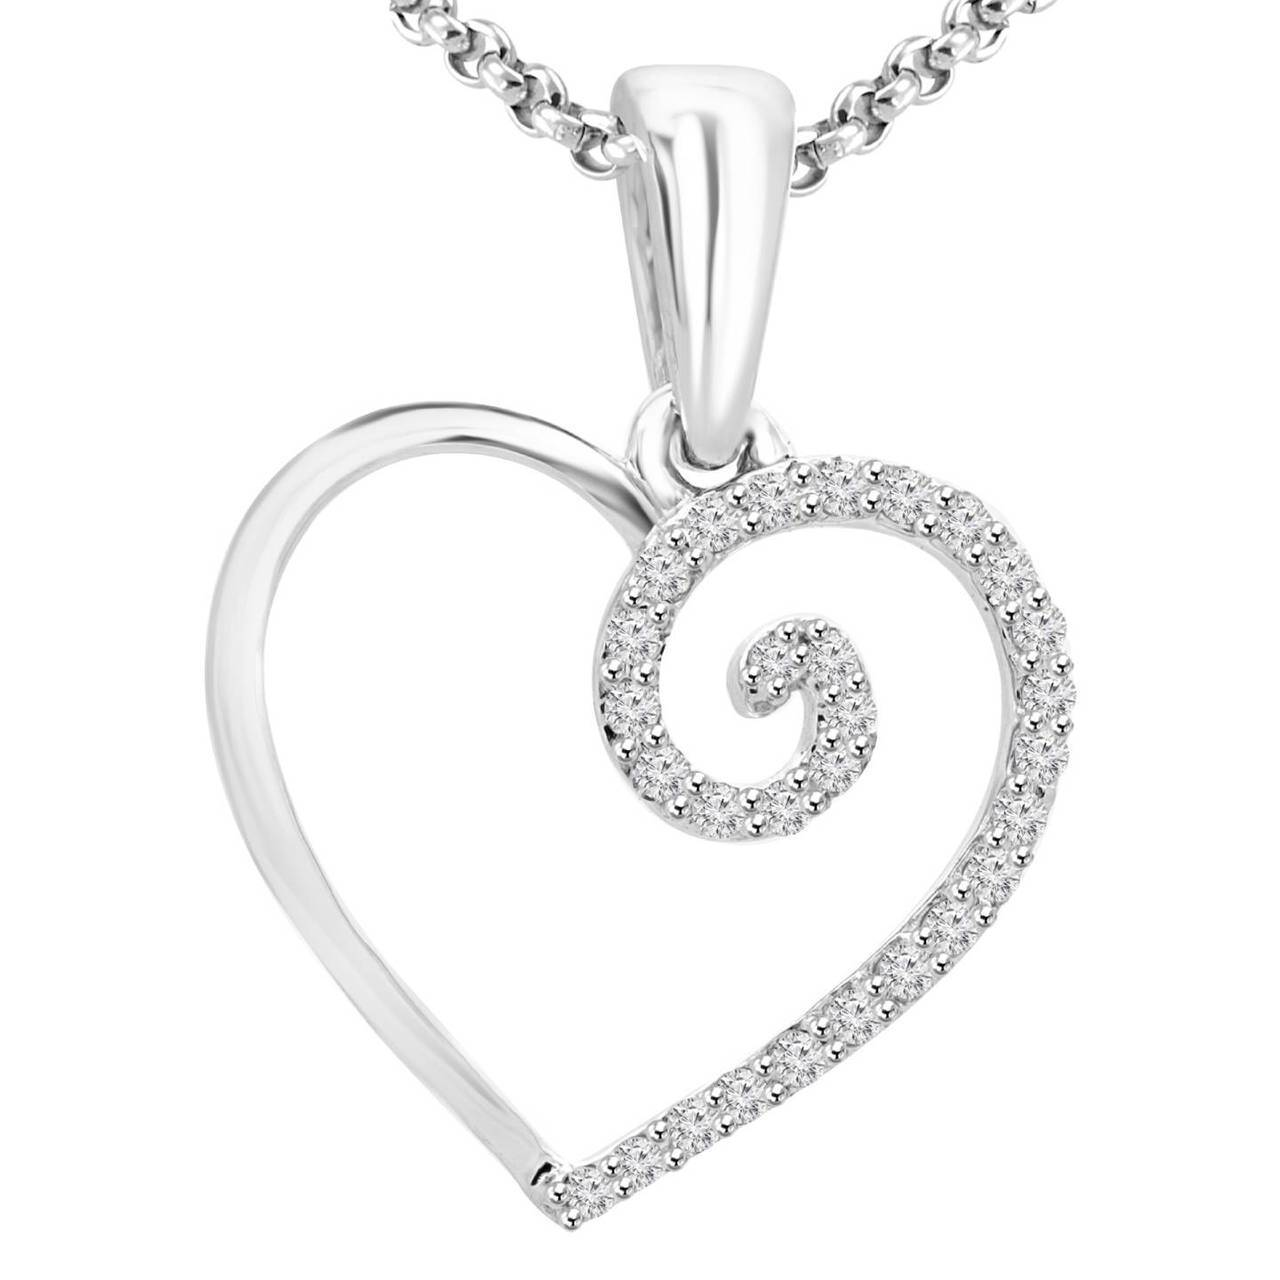 1280x1280 Heart Shaped Pendant Necklace Bijoux Majesty